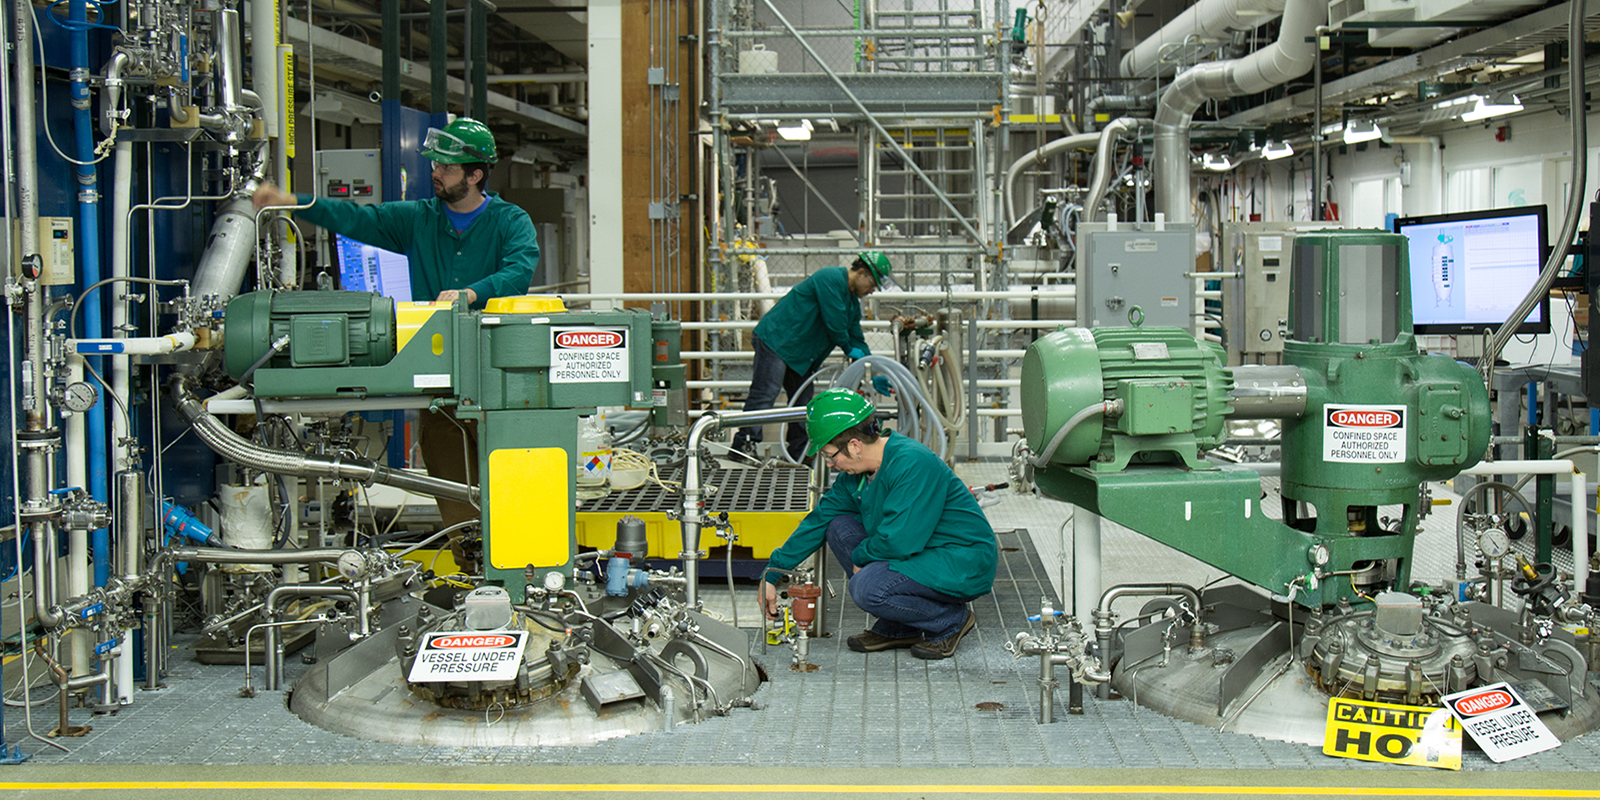 Inside of scale up chemical manufacturing plant